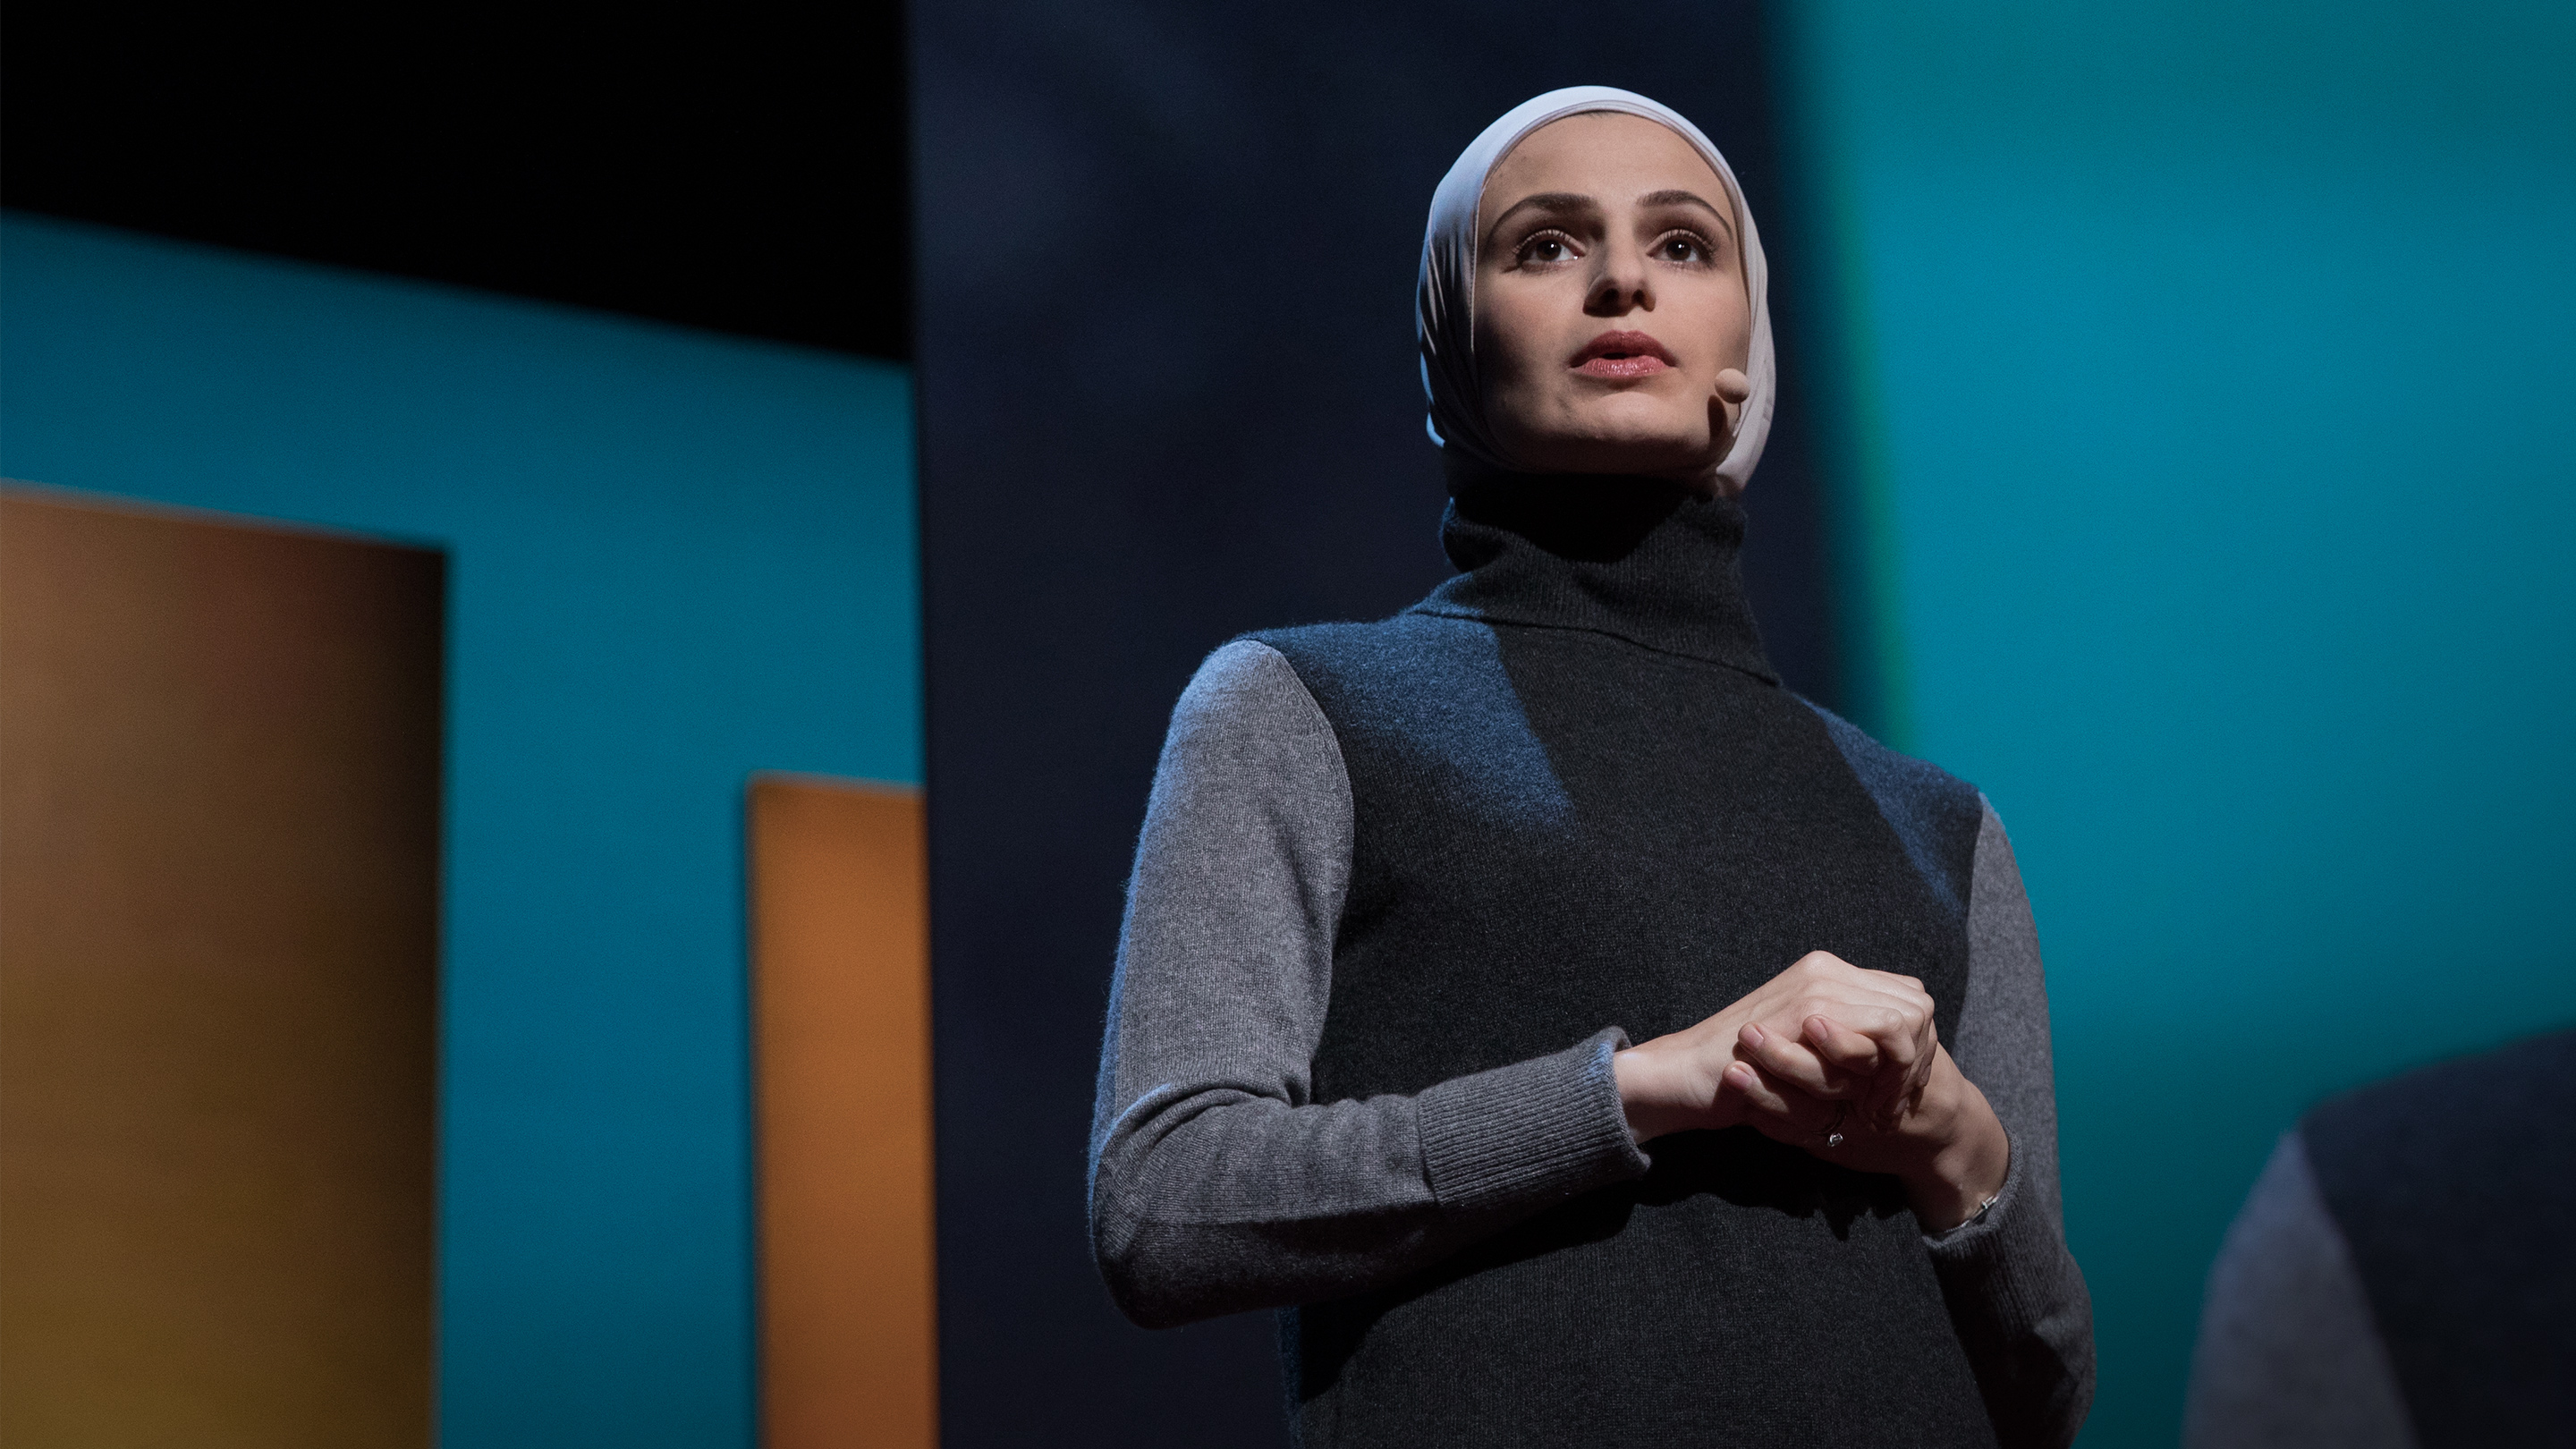 Dalia Mogahed: What it's like to be Muslim in America | TED Talk